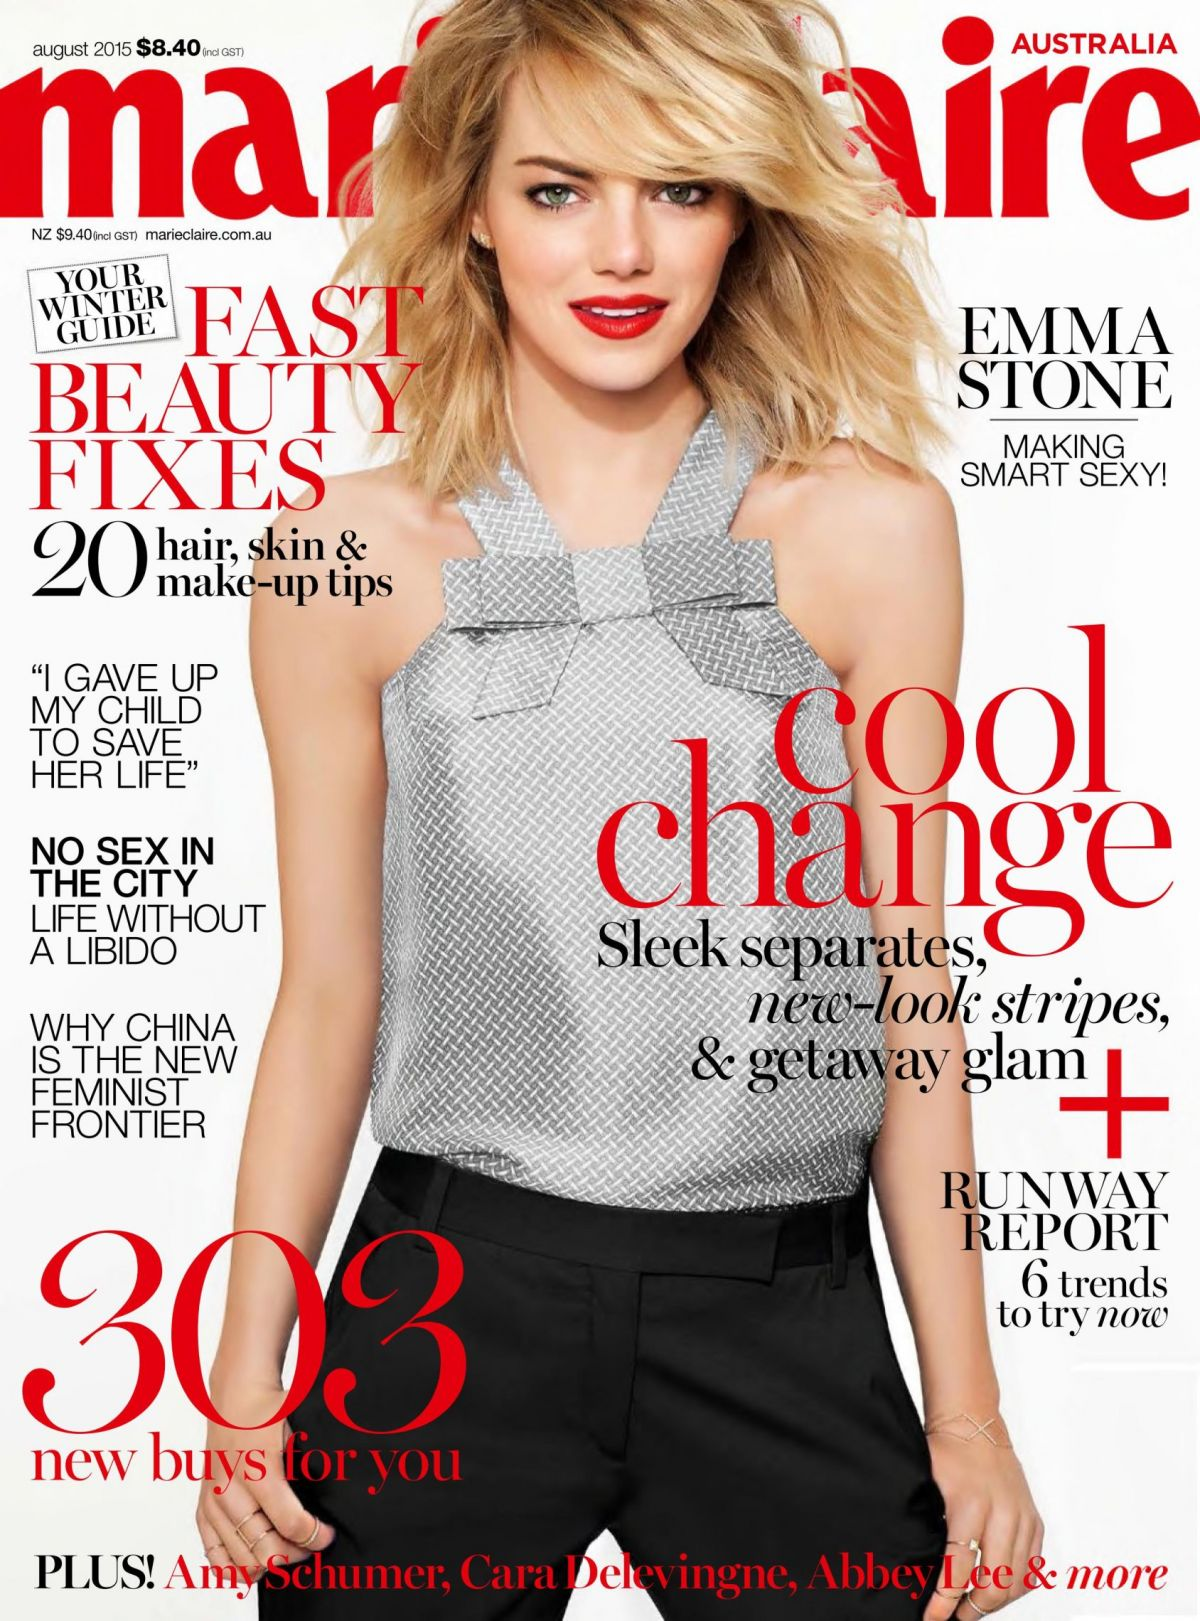 EMMA STONE in Marie Claire Magazine, Australia August 2015 Issue